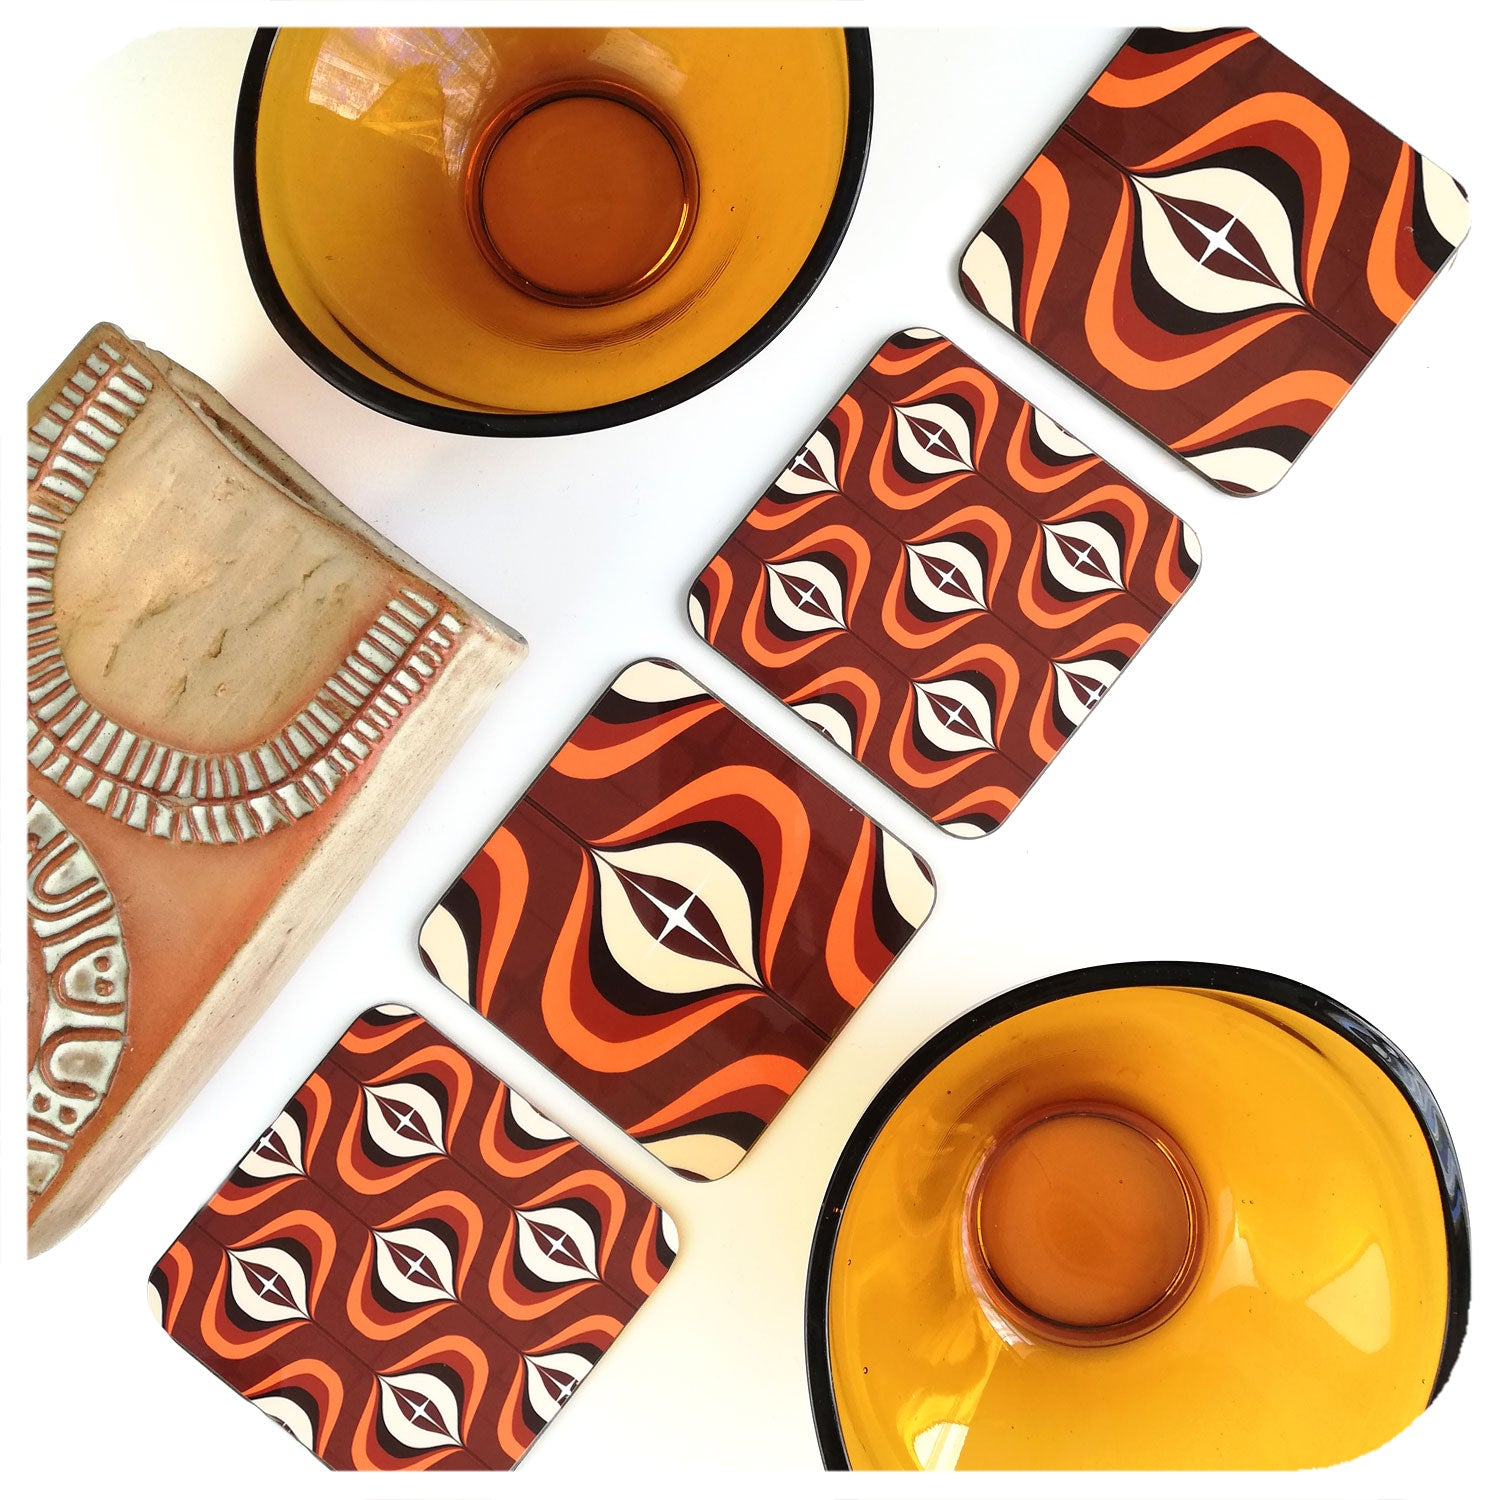 1970s Brown Op Art Coasters with vintage vase and bowls | The Inkabilly Emporium